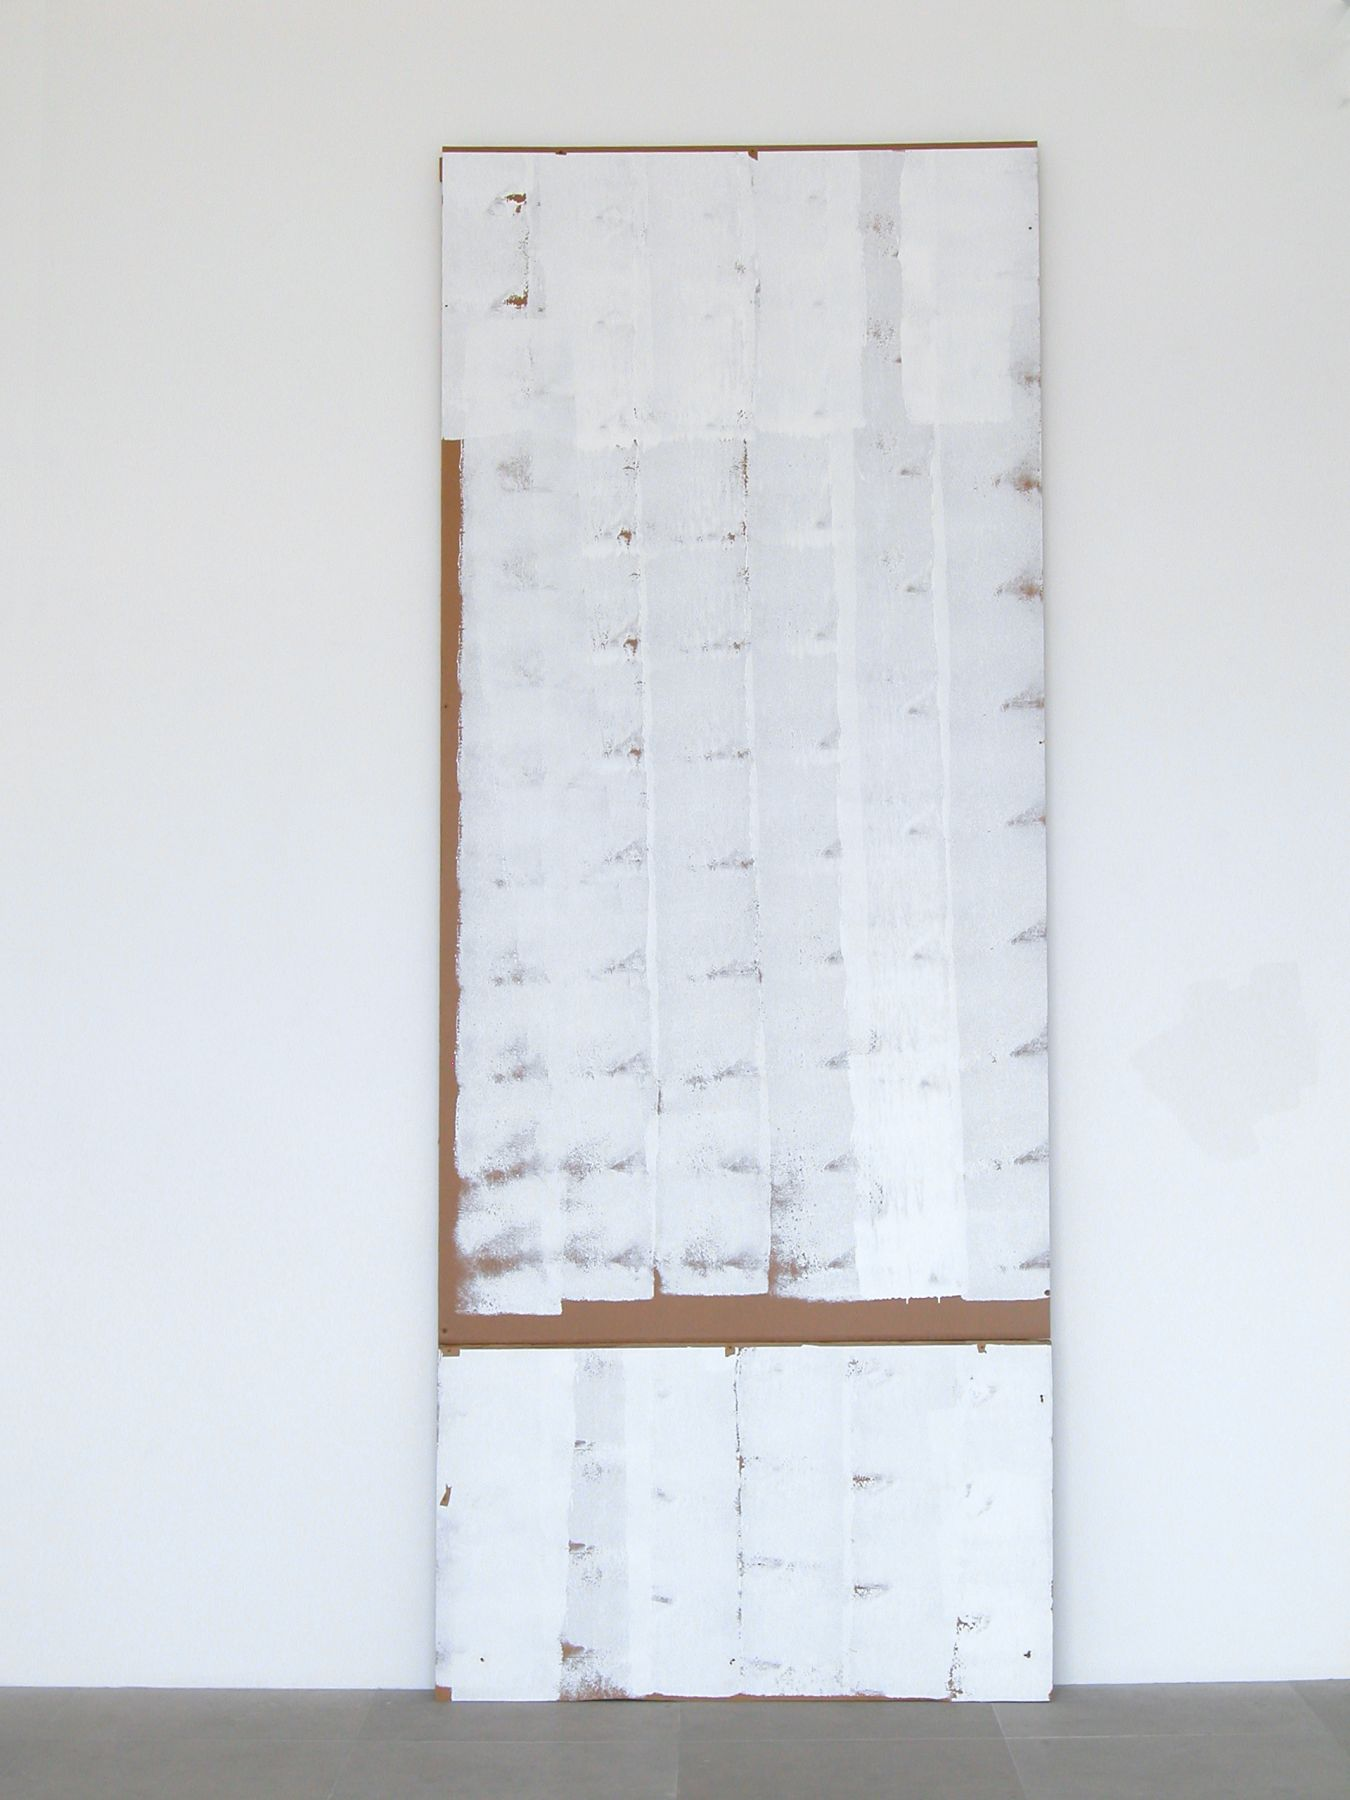 Where Go, 2008, Cardboard, paint, 123 x 48 x 5 inches